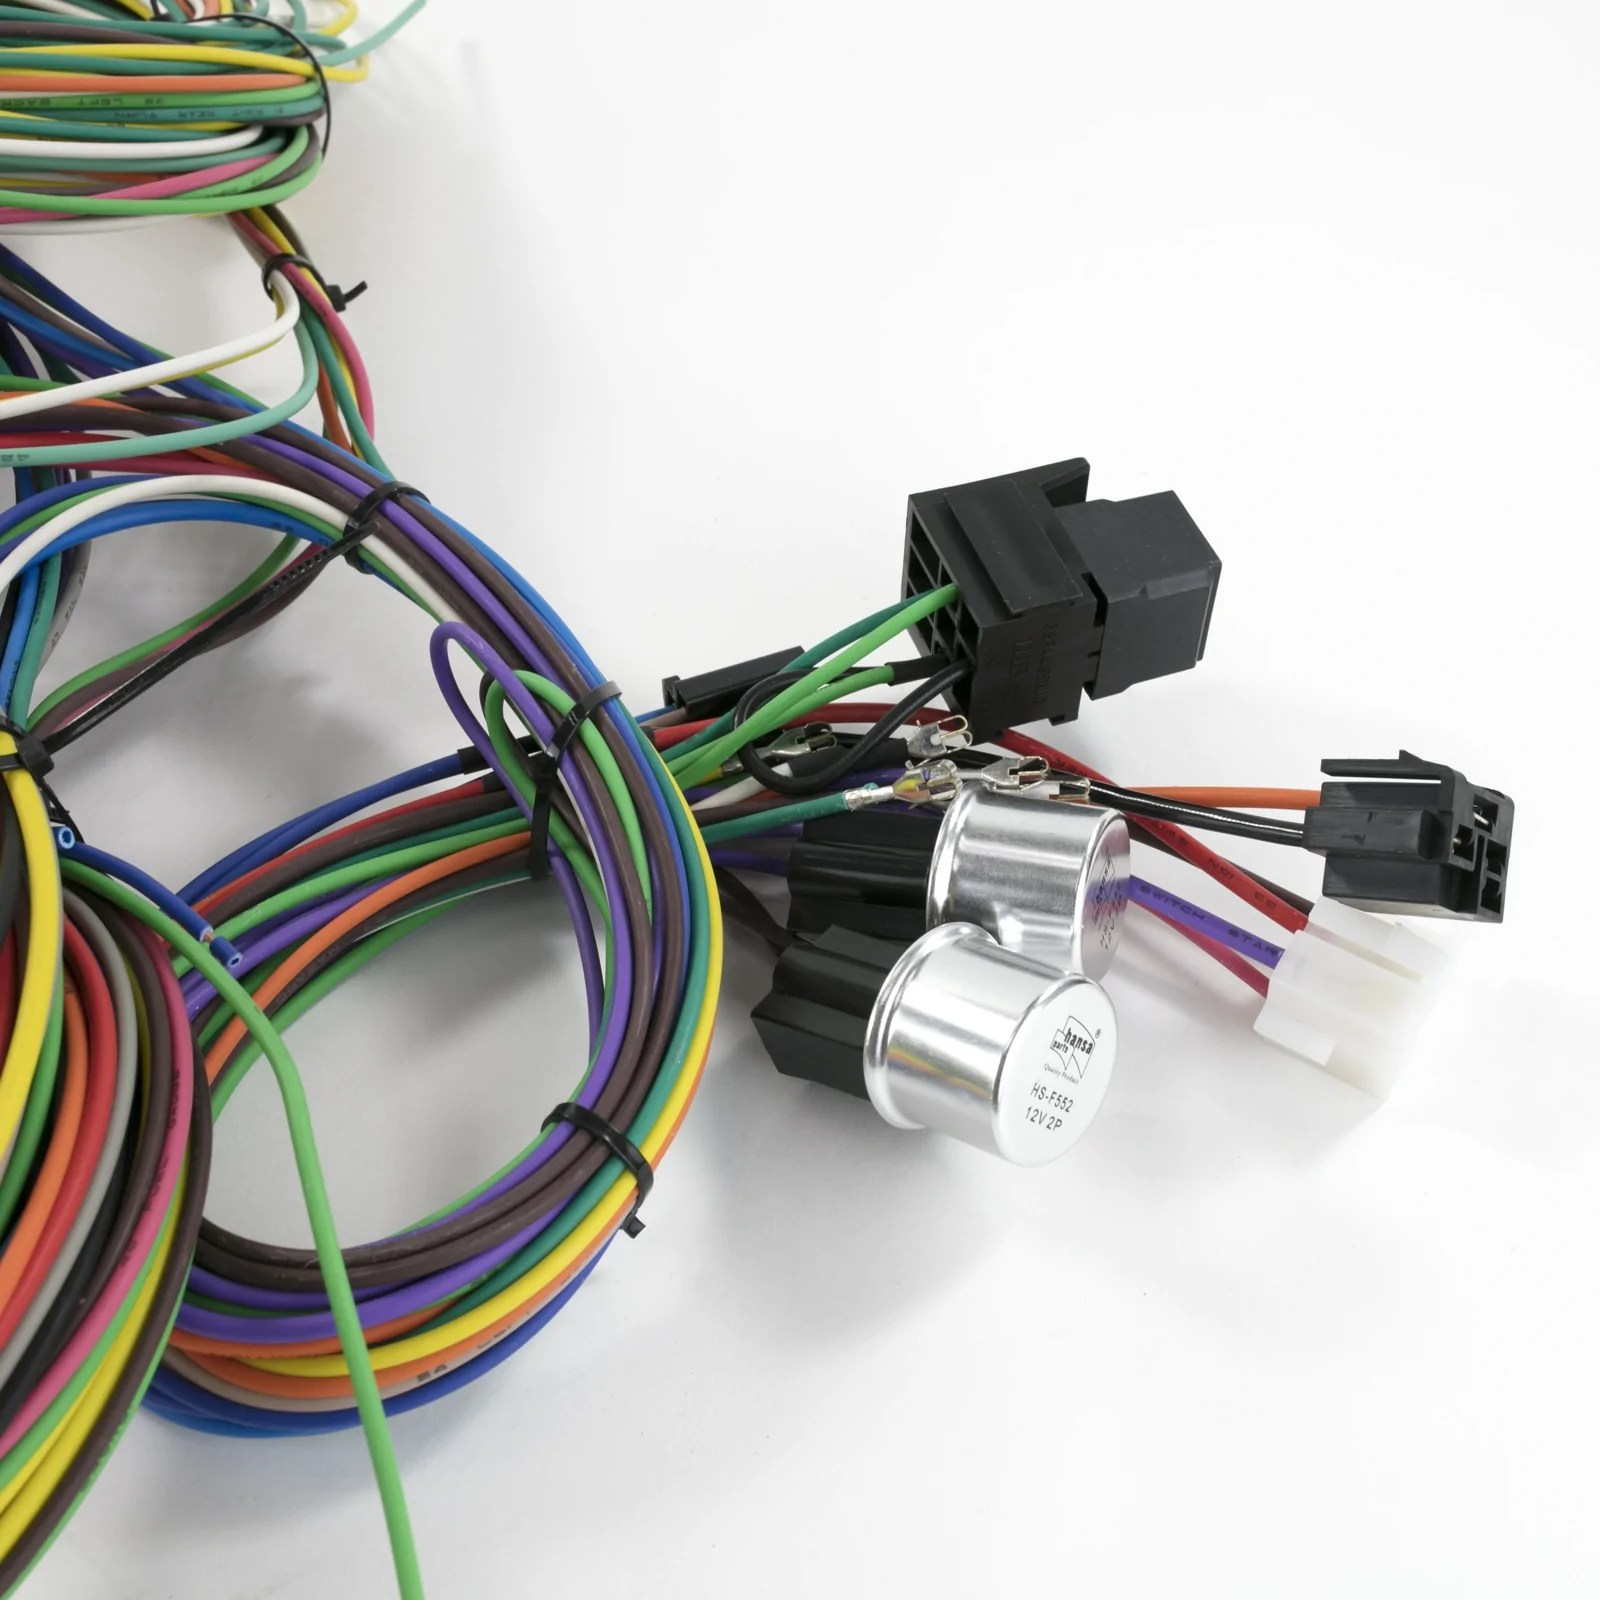 small resolution of wiring harness universal 240z 260z 280z 510 z car depot 280z new wiring harness 280z wiring harness